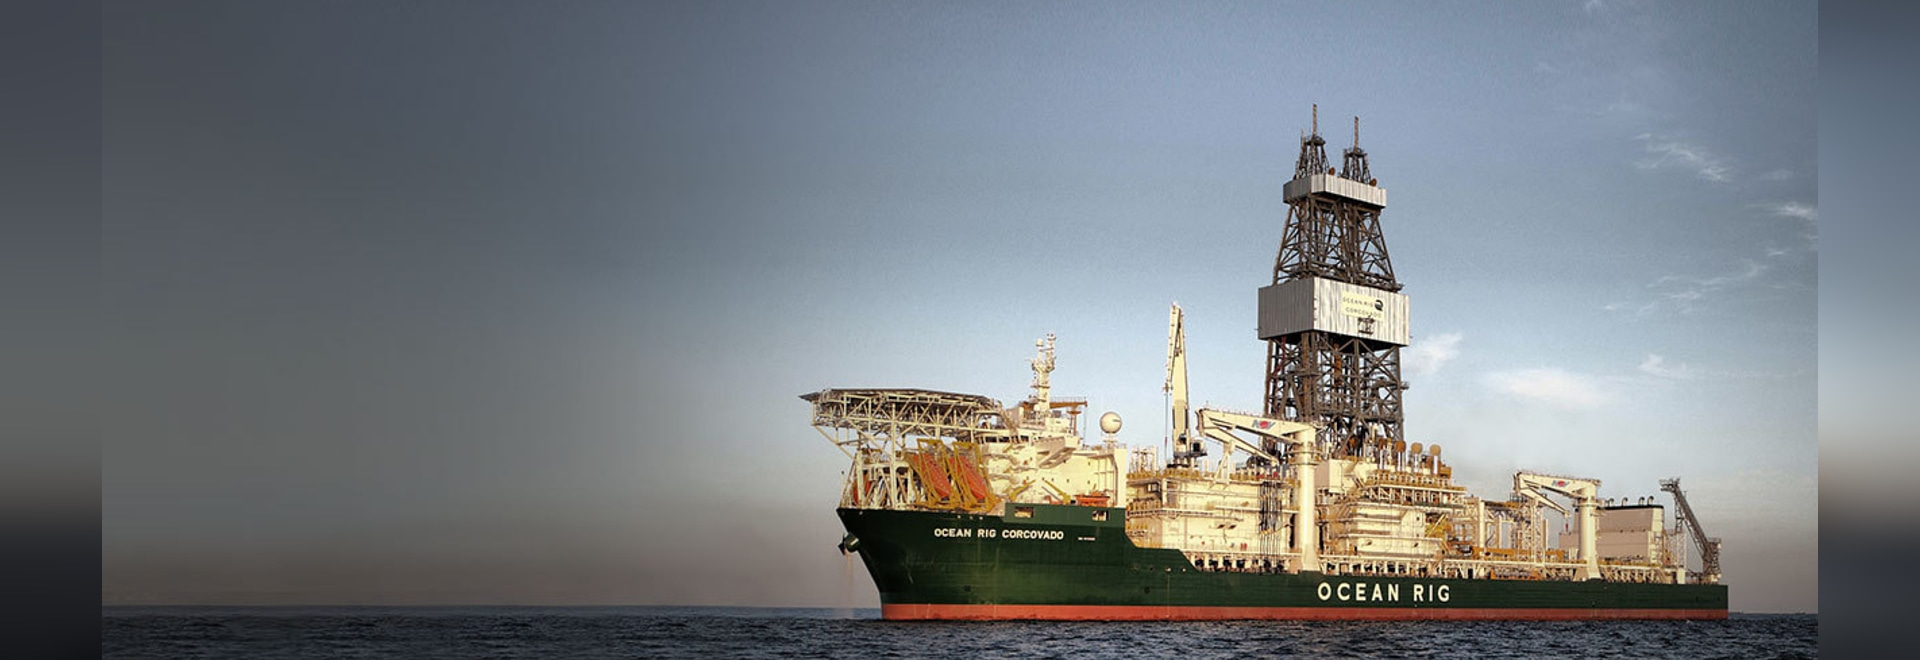 Economou's Ocean Rig files for bankruptcy